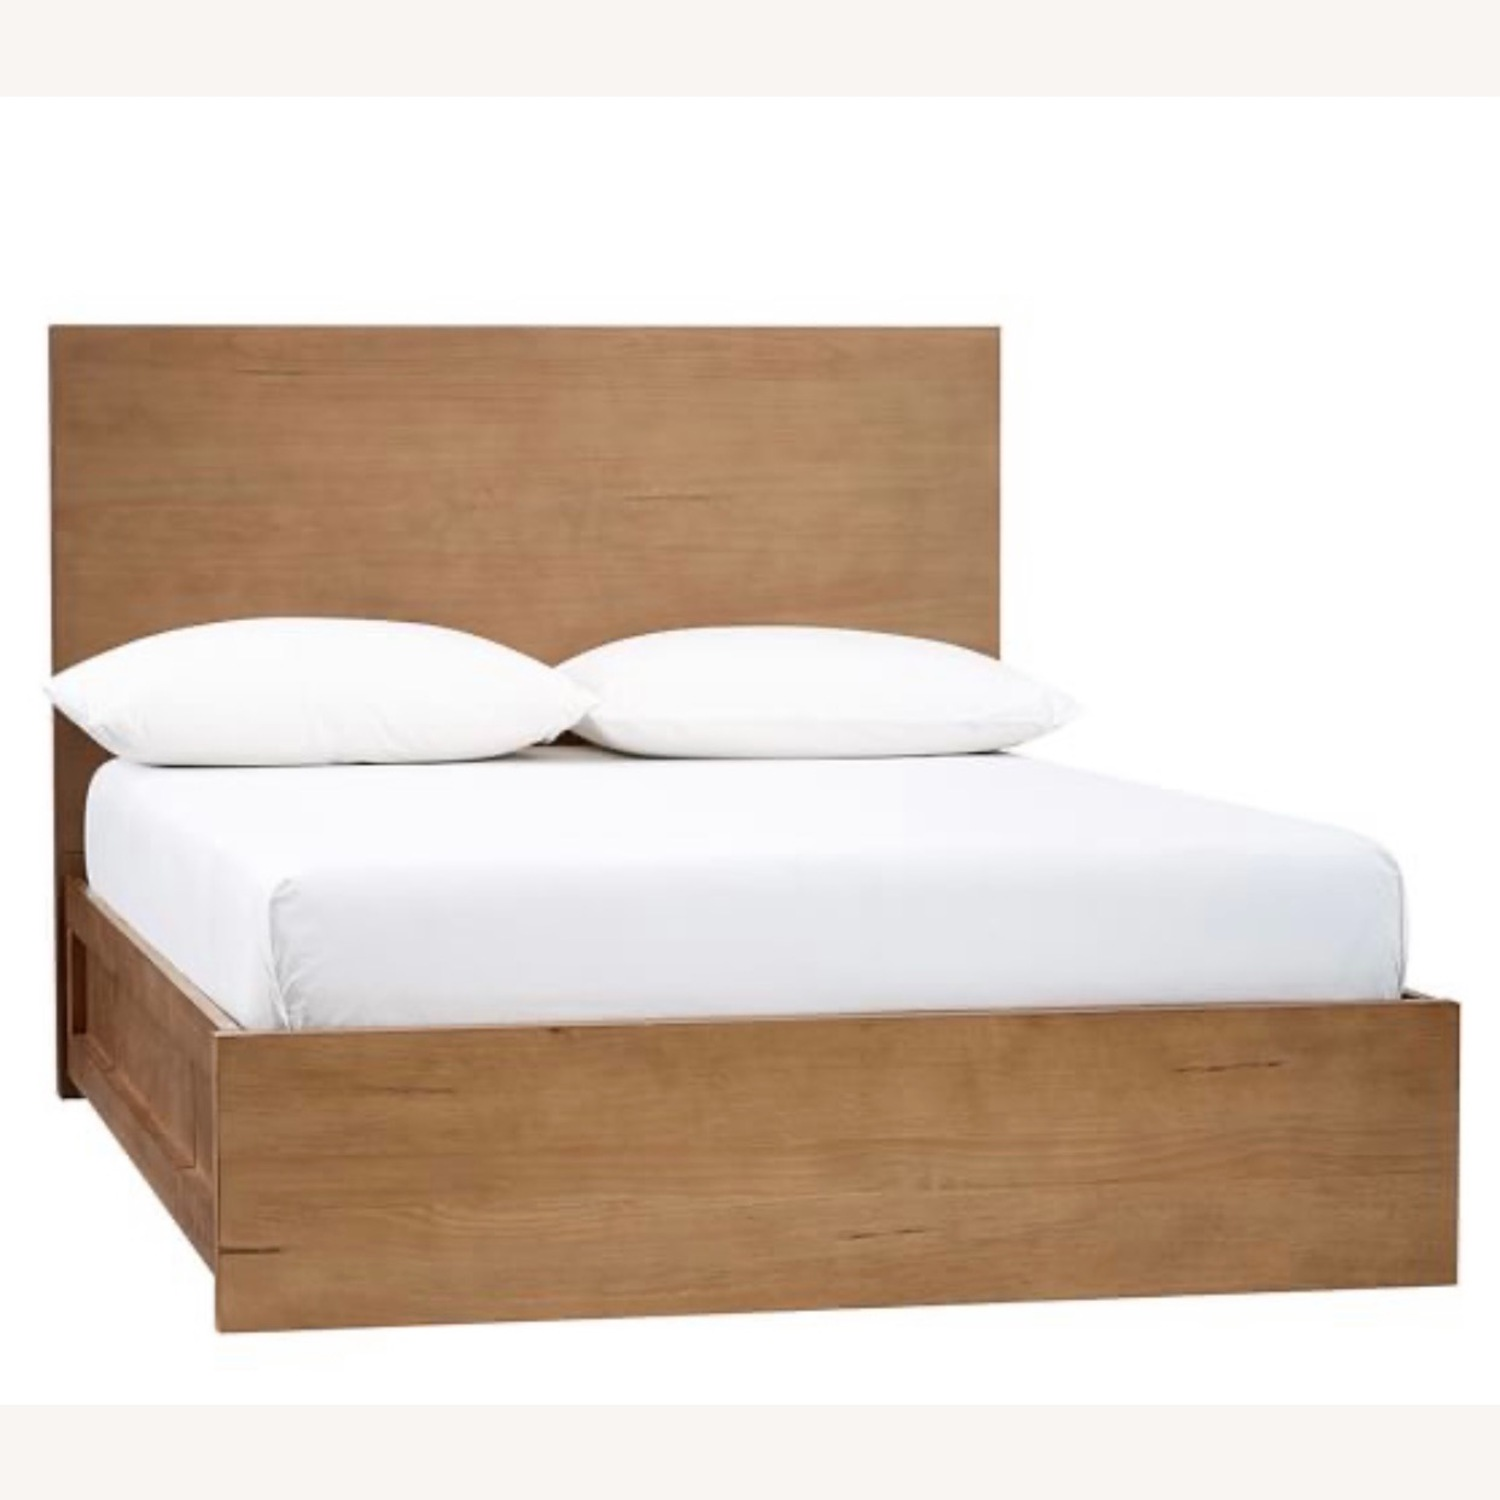 Pottery Barn Full Size Dover Storage Bed - image-1